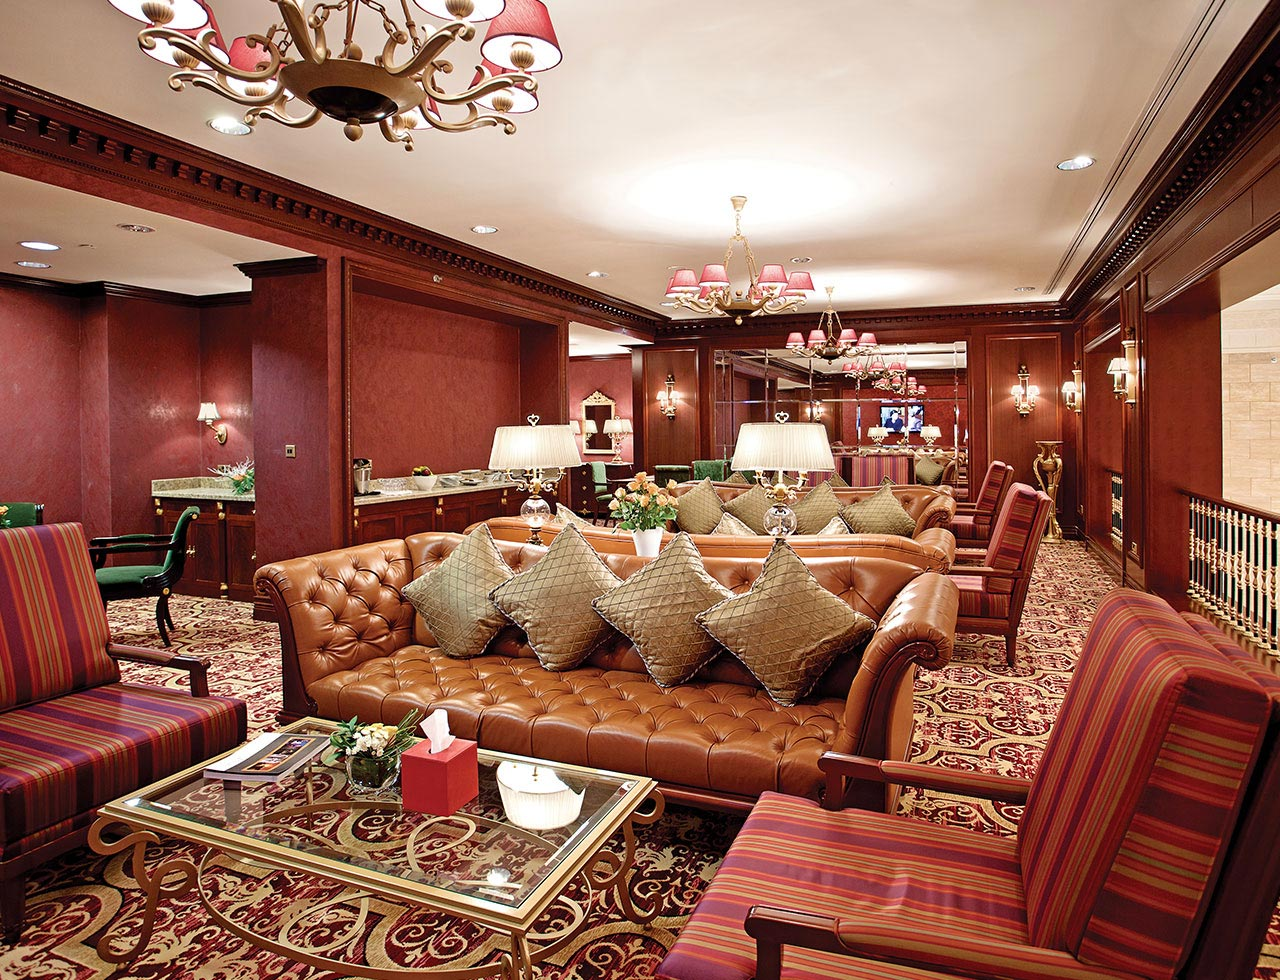 Grand-Heritage-Hotel-05a